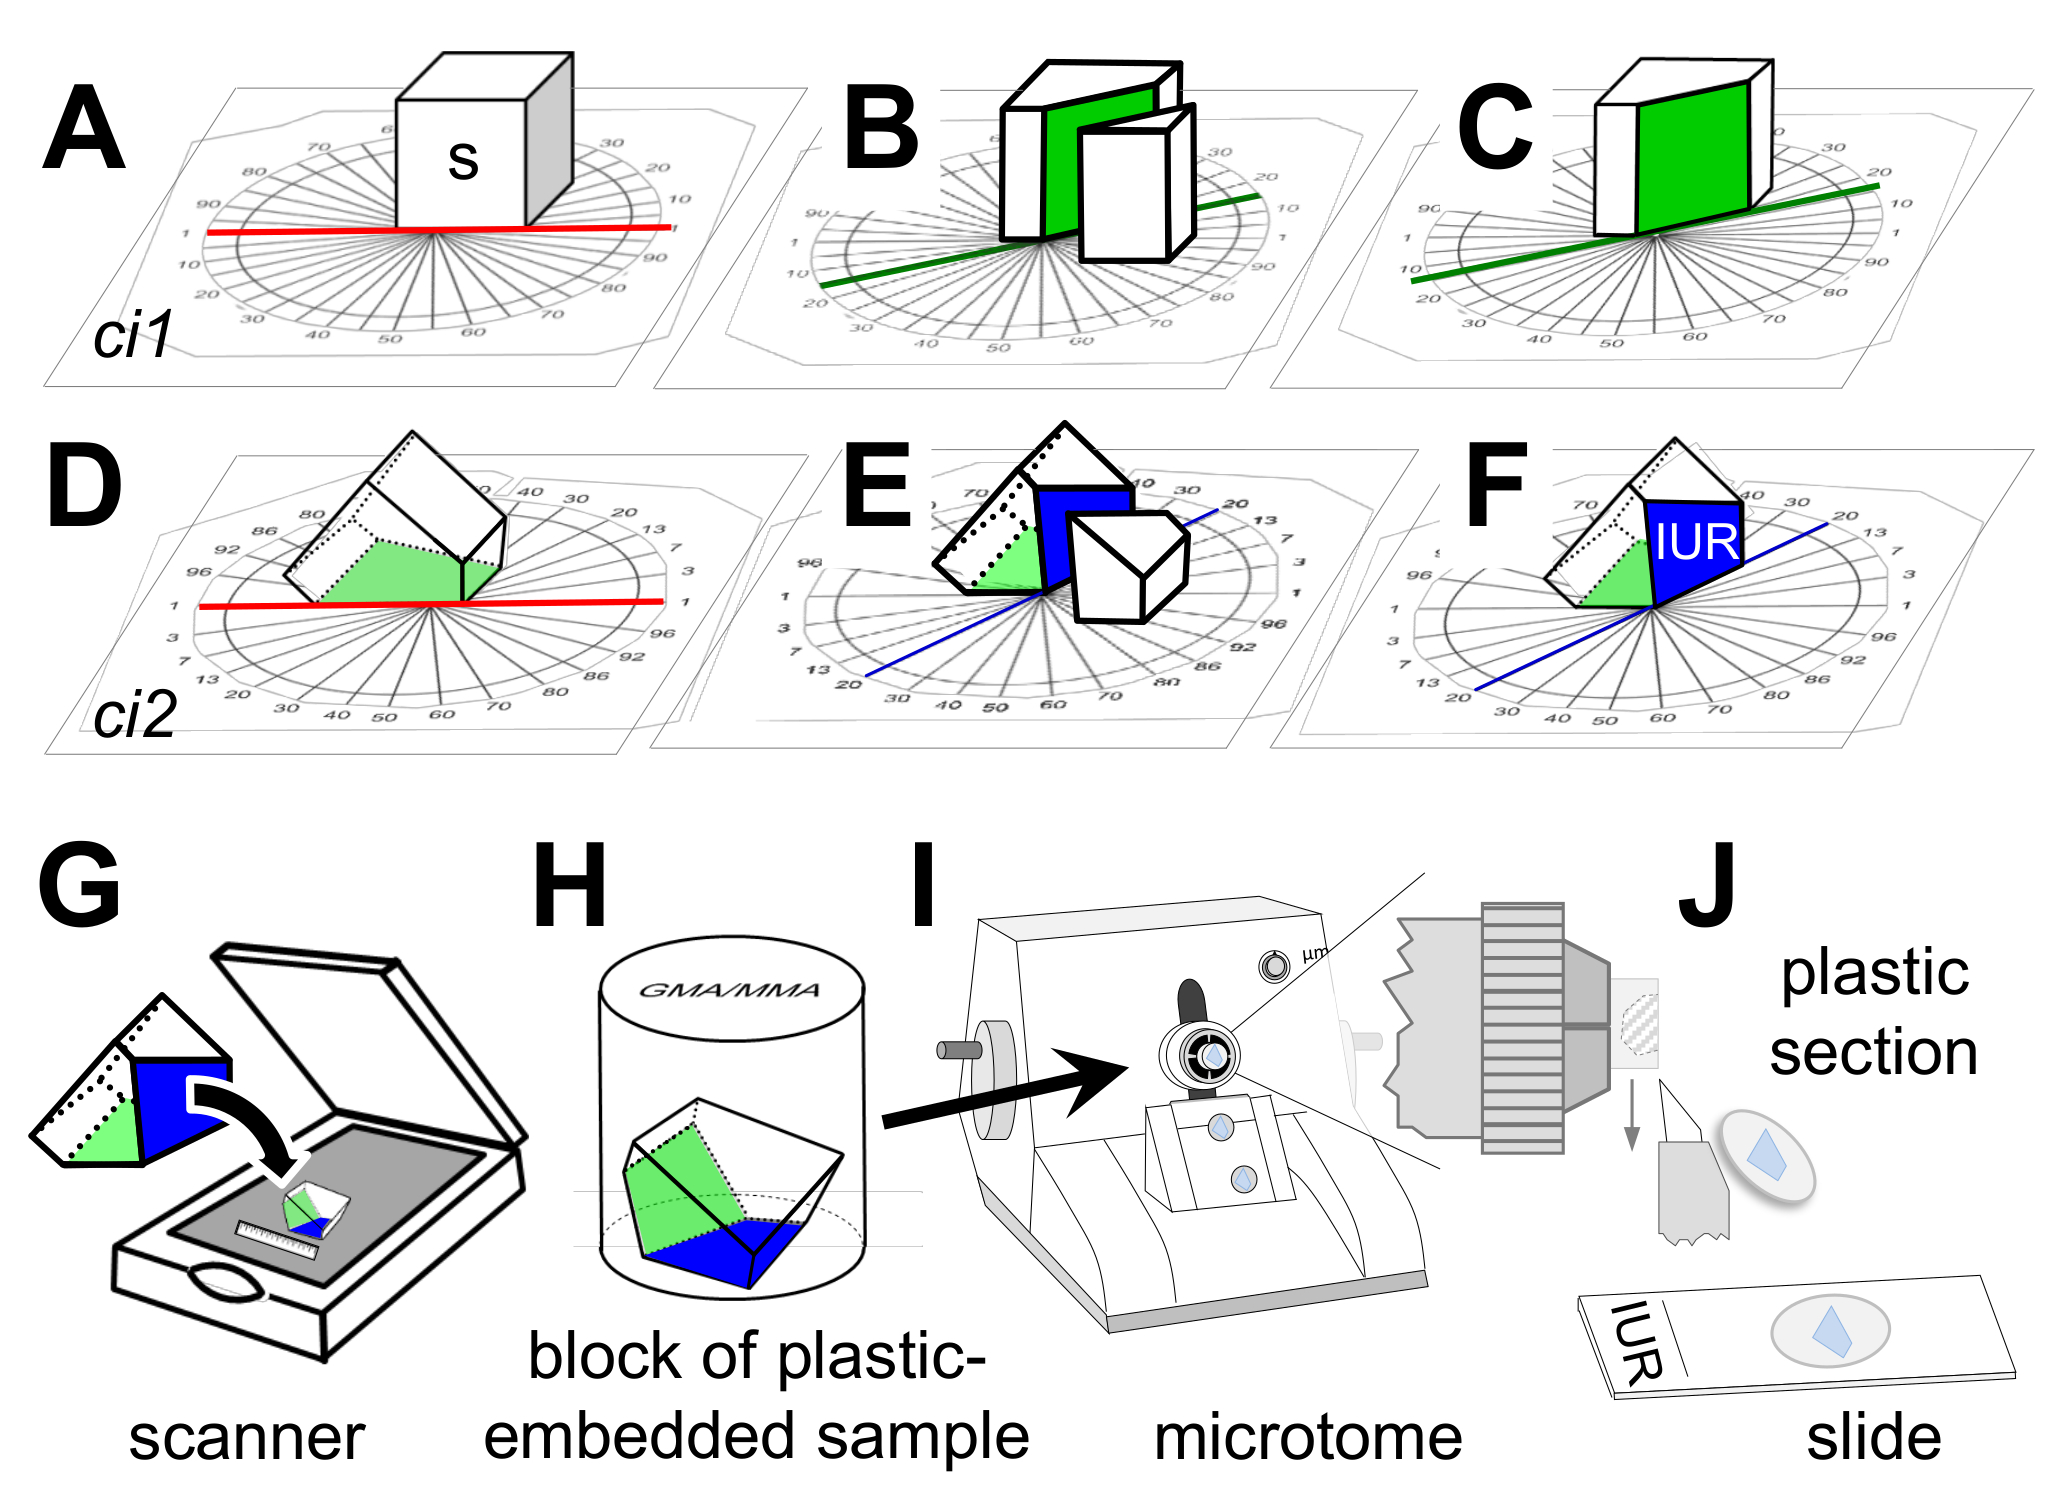 Sampling Strategies And Processing Of Biobank Tissue Samples From